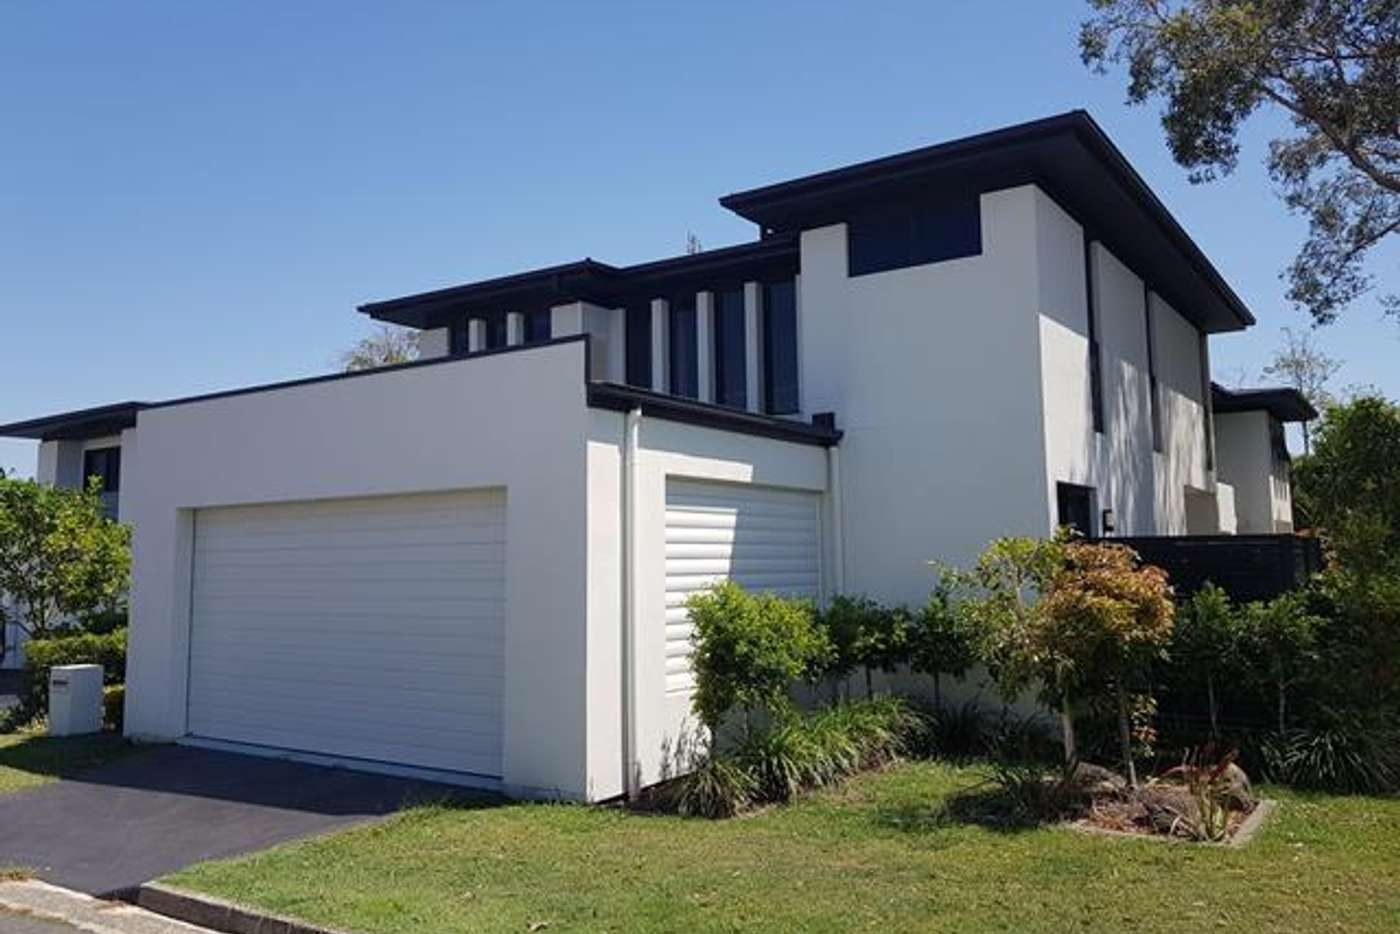 Main view of Homely house listing, 7 Clinton Street, Labrador QLD 4215